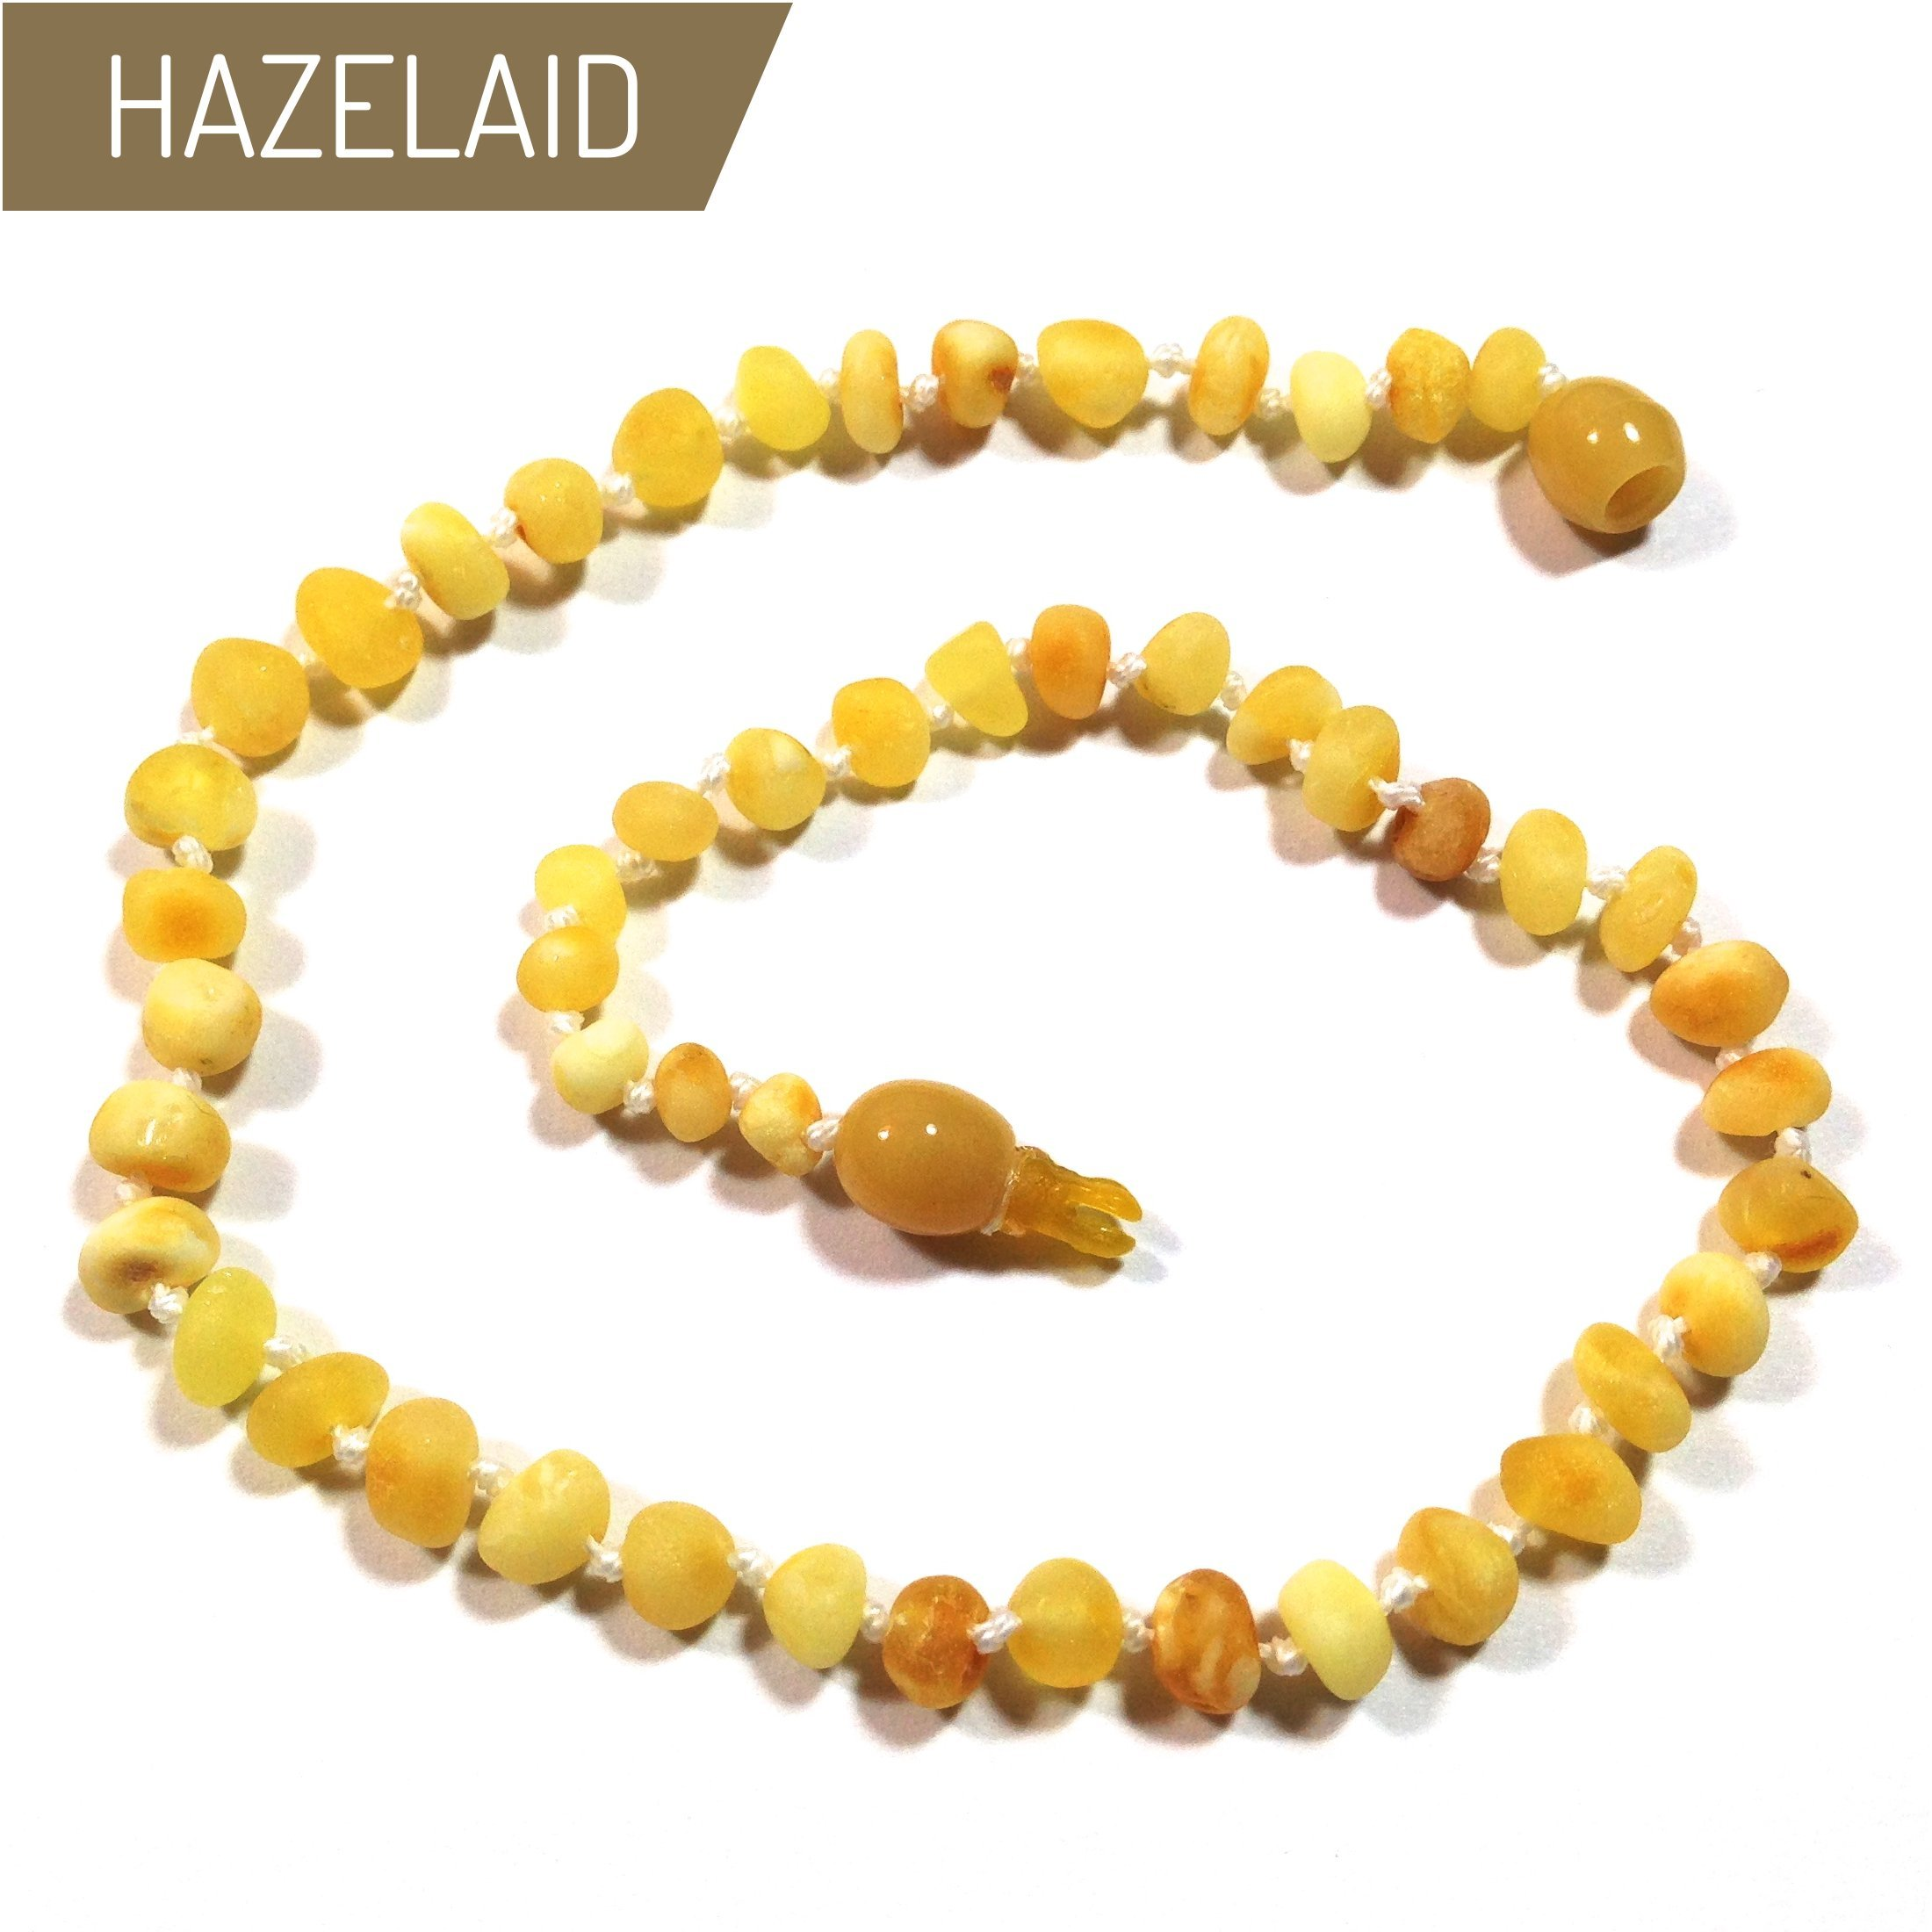 Hazelaid (TM) 12'' Pop-Clasp Baltic Amber Super Butter Necklace